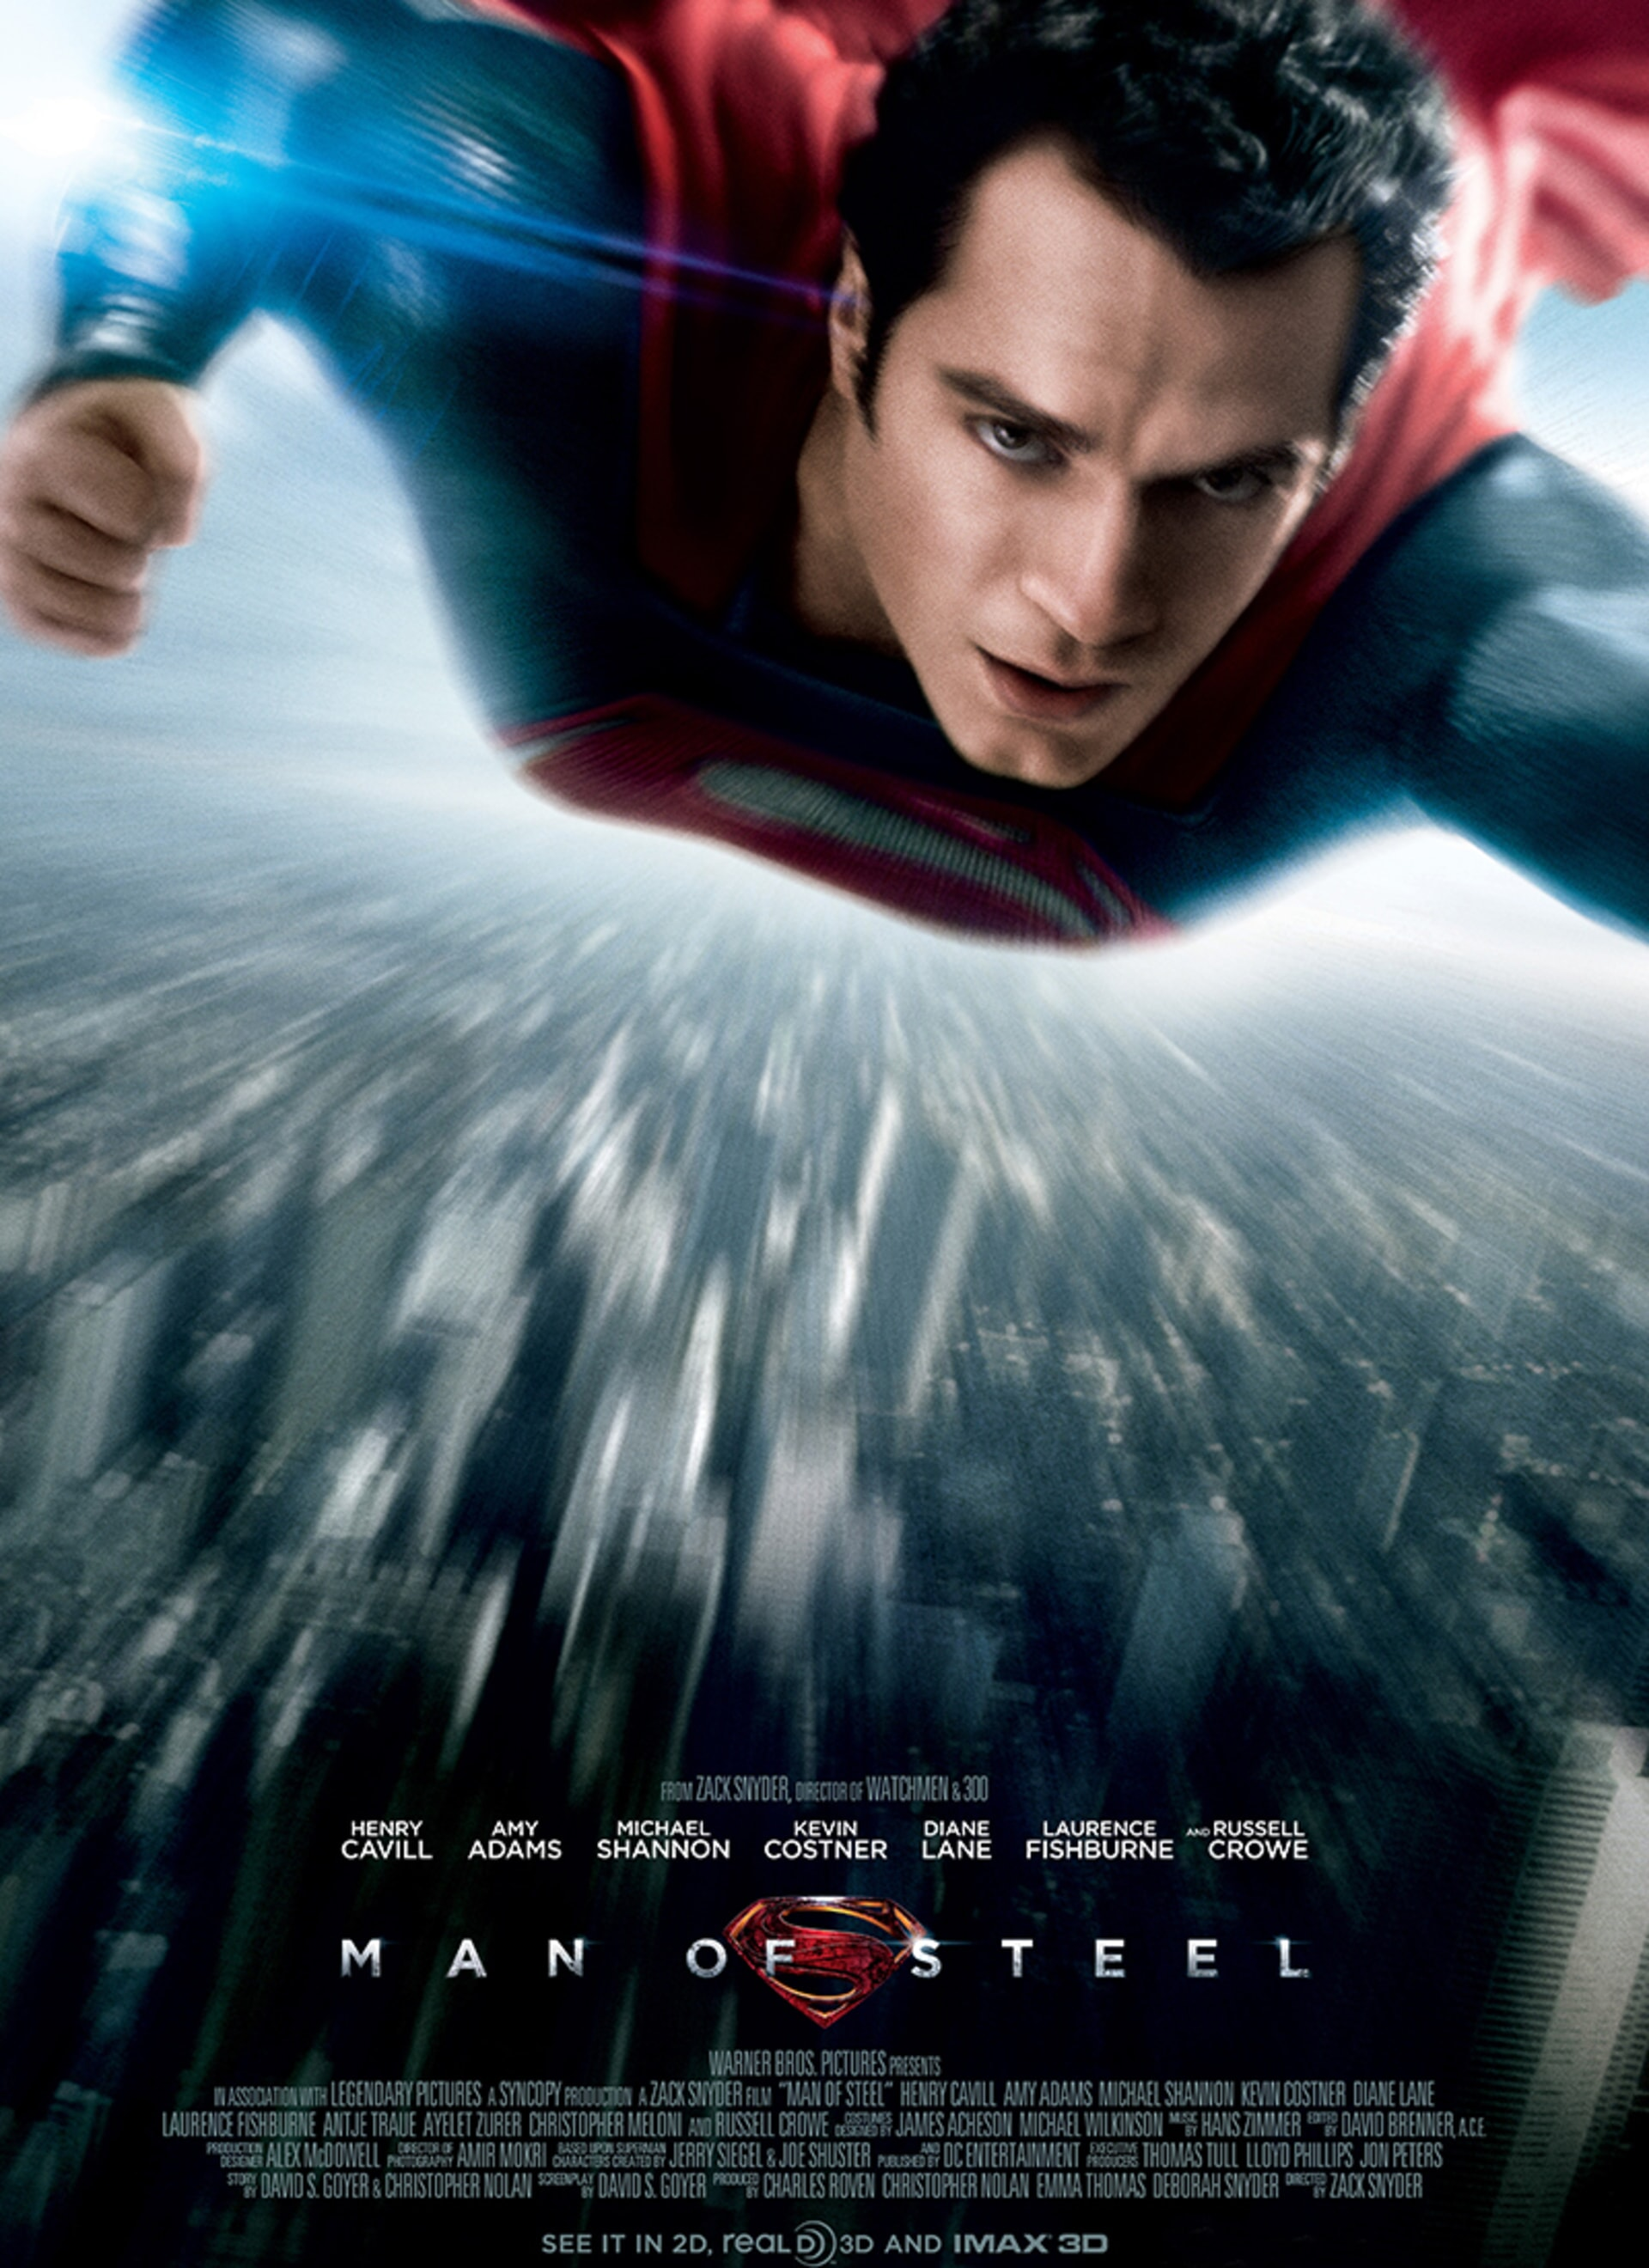 Man of Steel - Poster 1